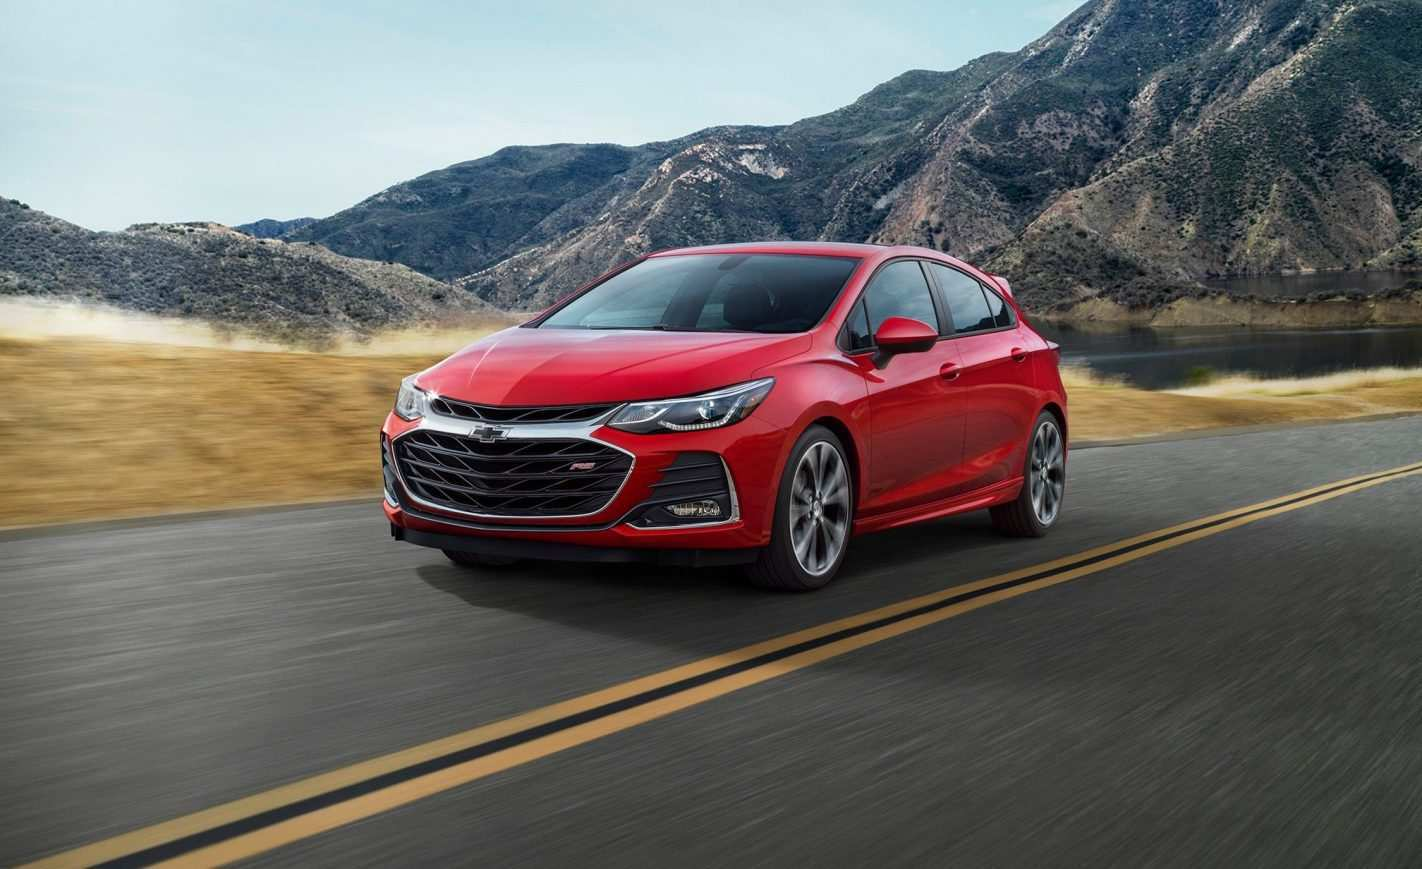 71 Best Review New 2019 Chevrolet Hd Review And Release Date Specs for New 2019 Chevrolet Hd Review And Release Date